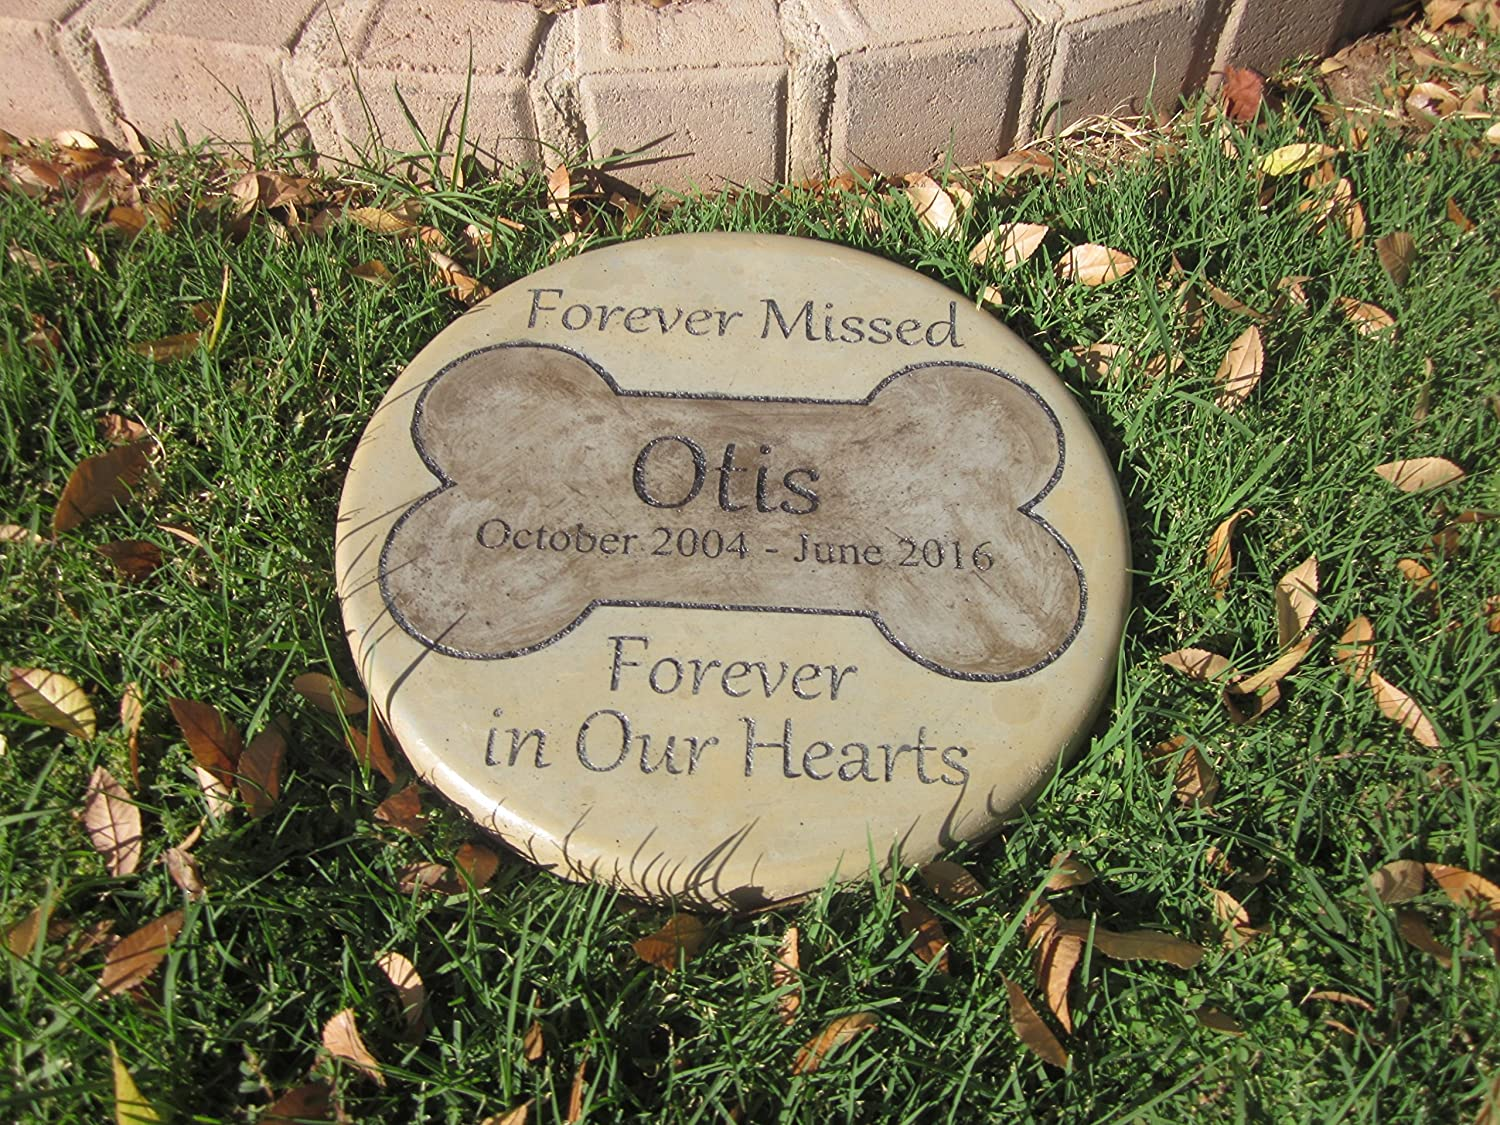 Garden Stones Engraved Amazon personalized pet memorial step stone 11diameter amazon personalized pet memorial step stone 11diameter forever missed forever in our hearts outdoor decorative stones garden outdoor workwithnaturefo